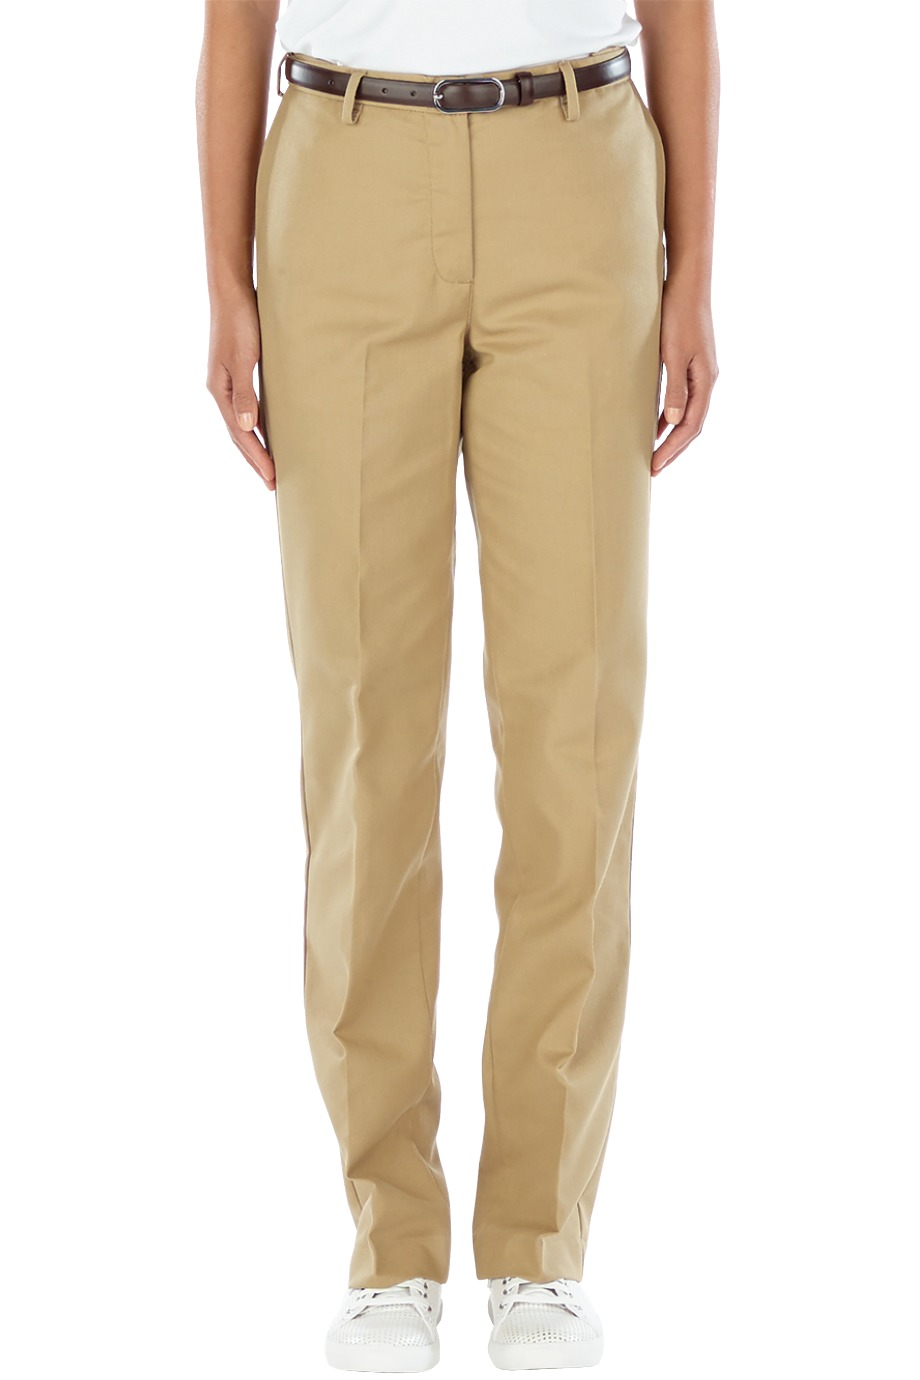 Ladies' Easy Fit Chino Flat Front Pant-Edwards Garment